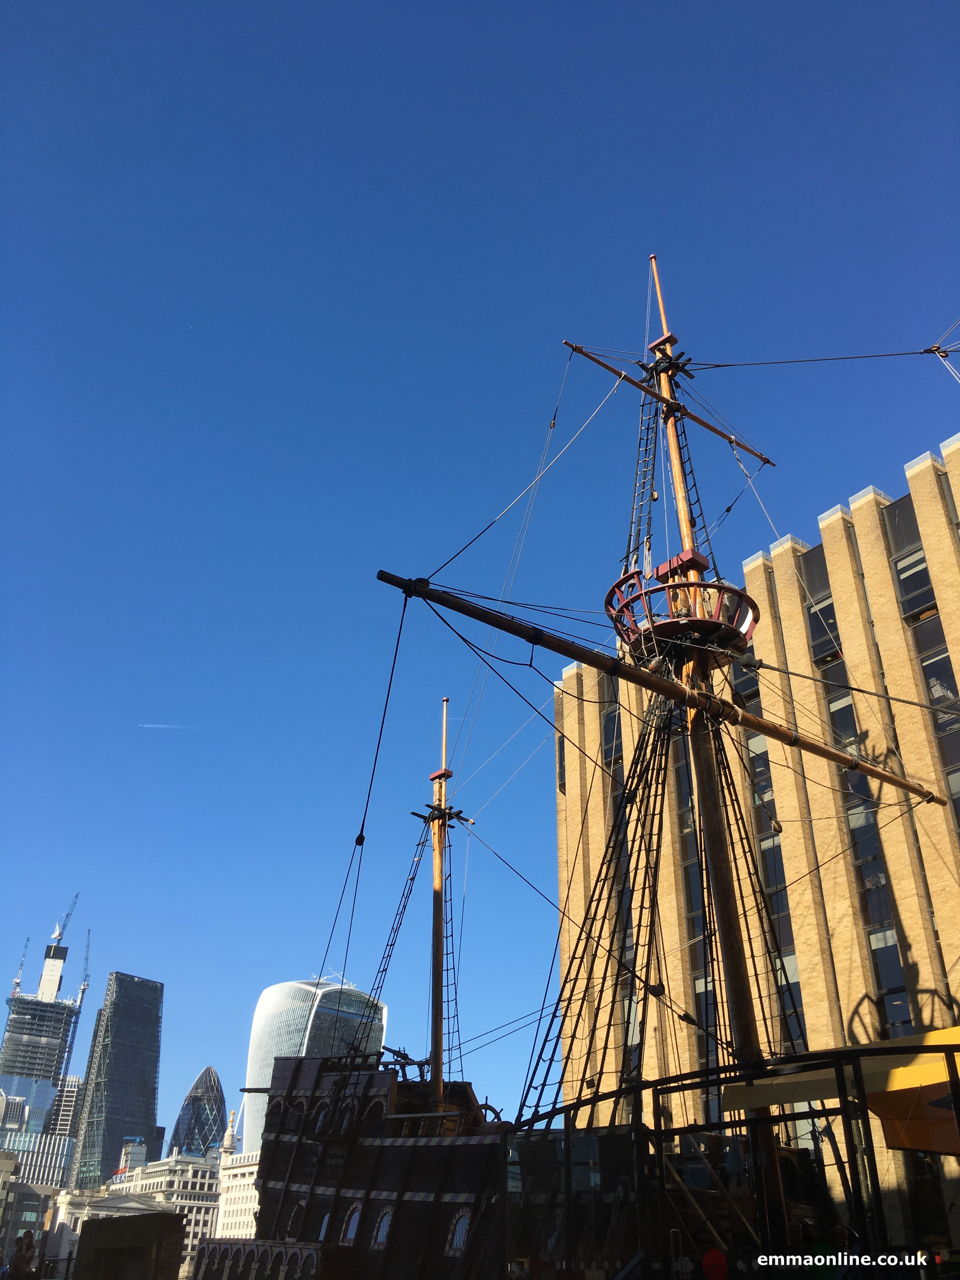 The Golden Hinde, a replica of the ship Sir Francis Drake captained around the globe